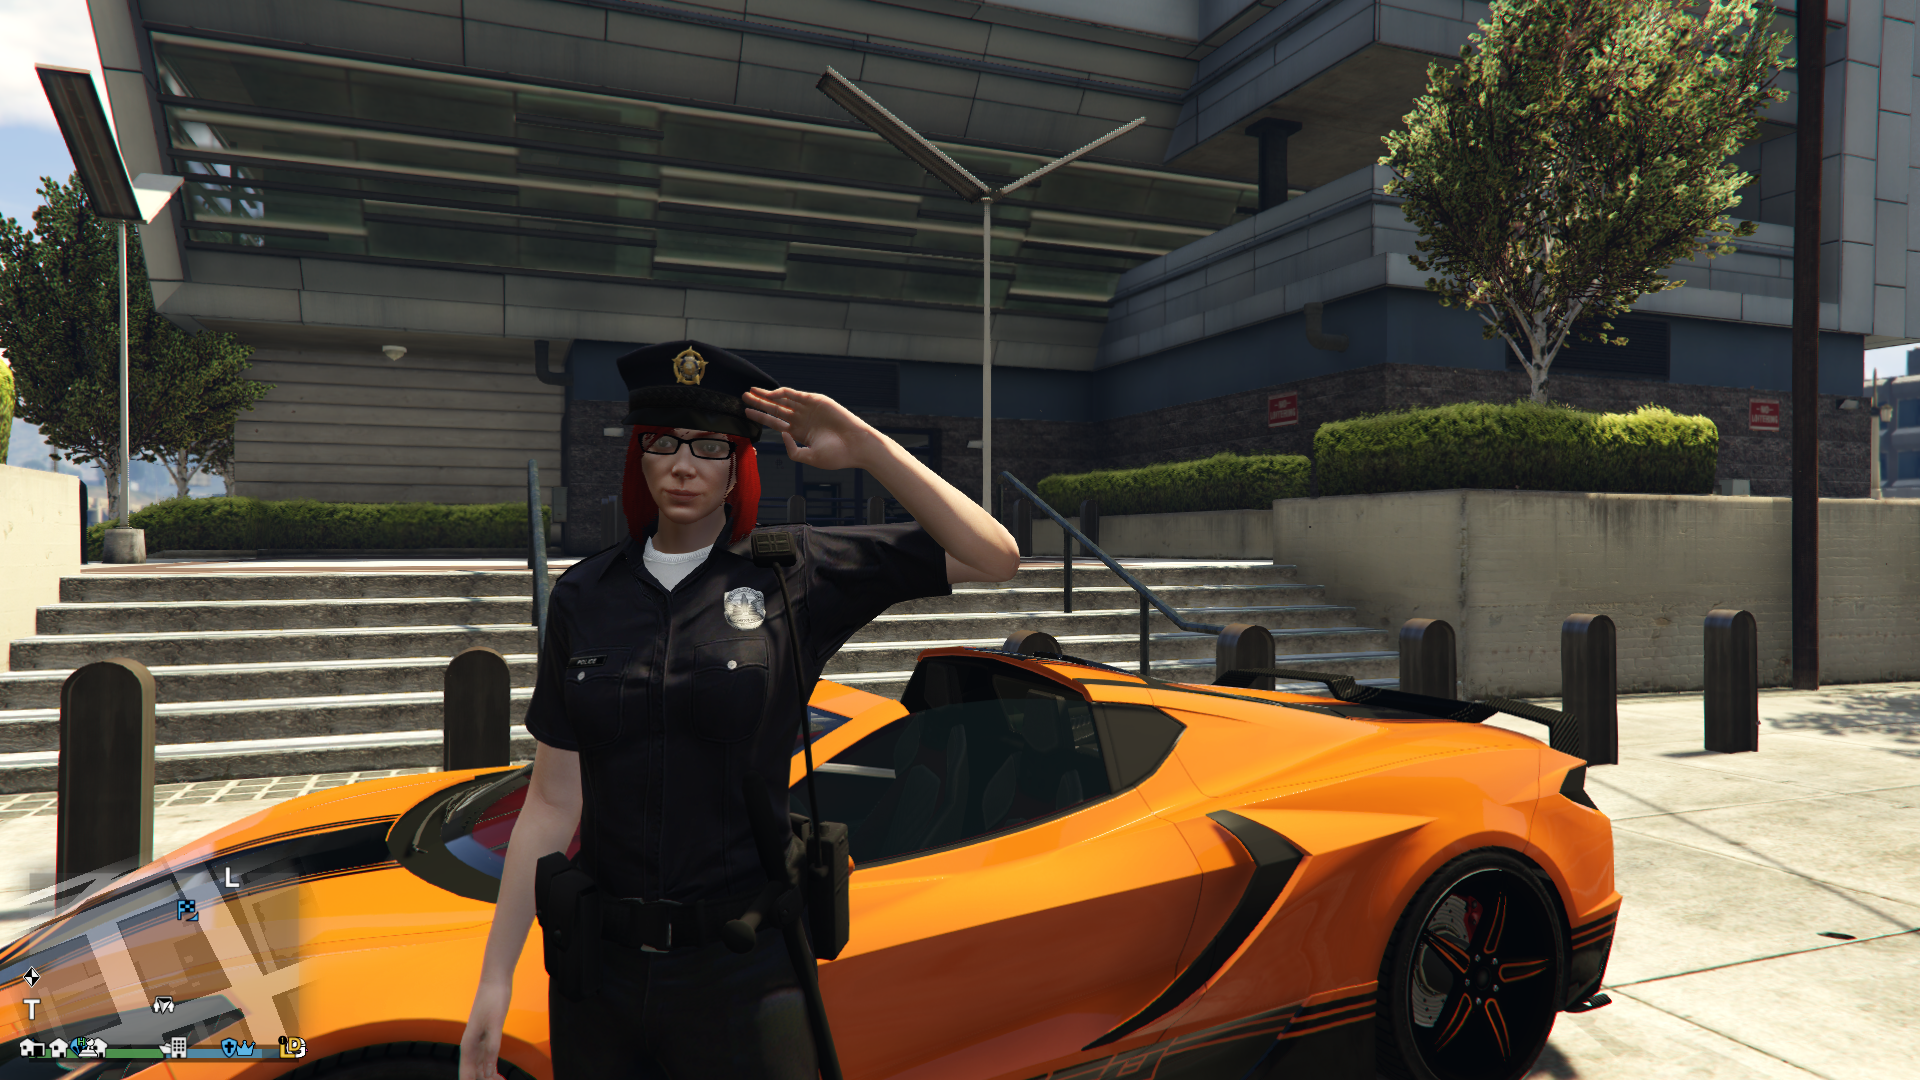 Grand_Theft_Auto_V_20200820140237.png